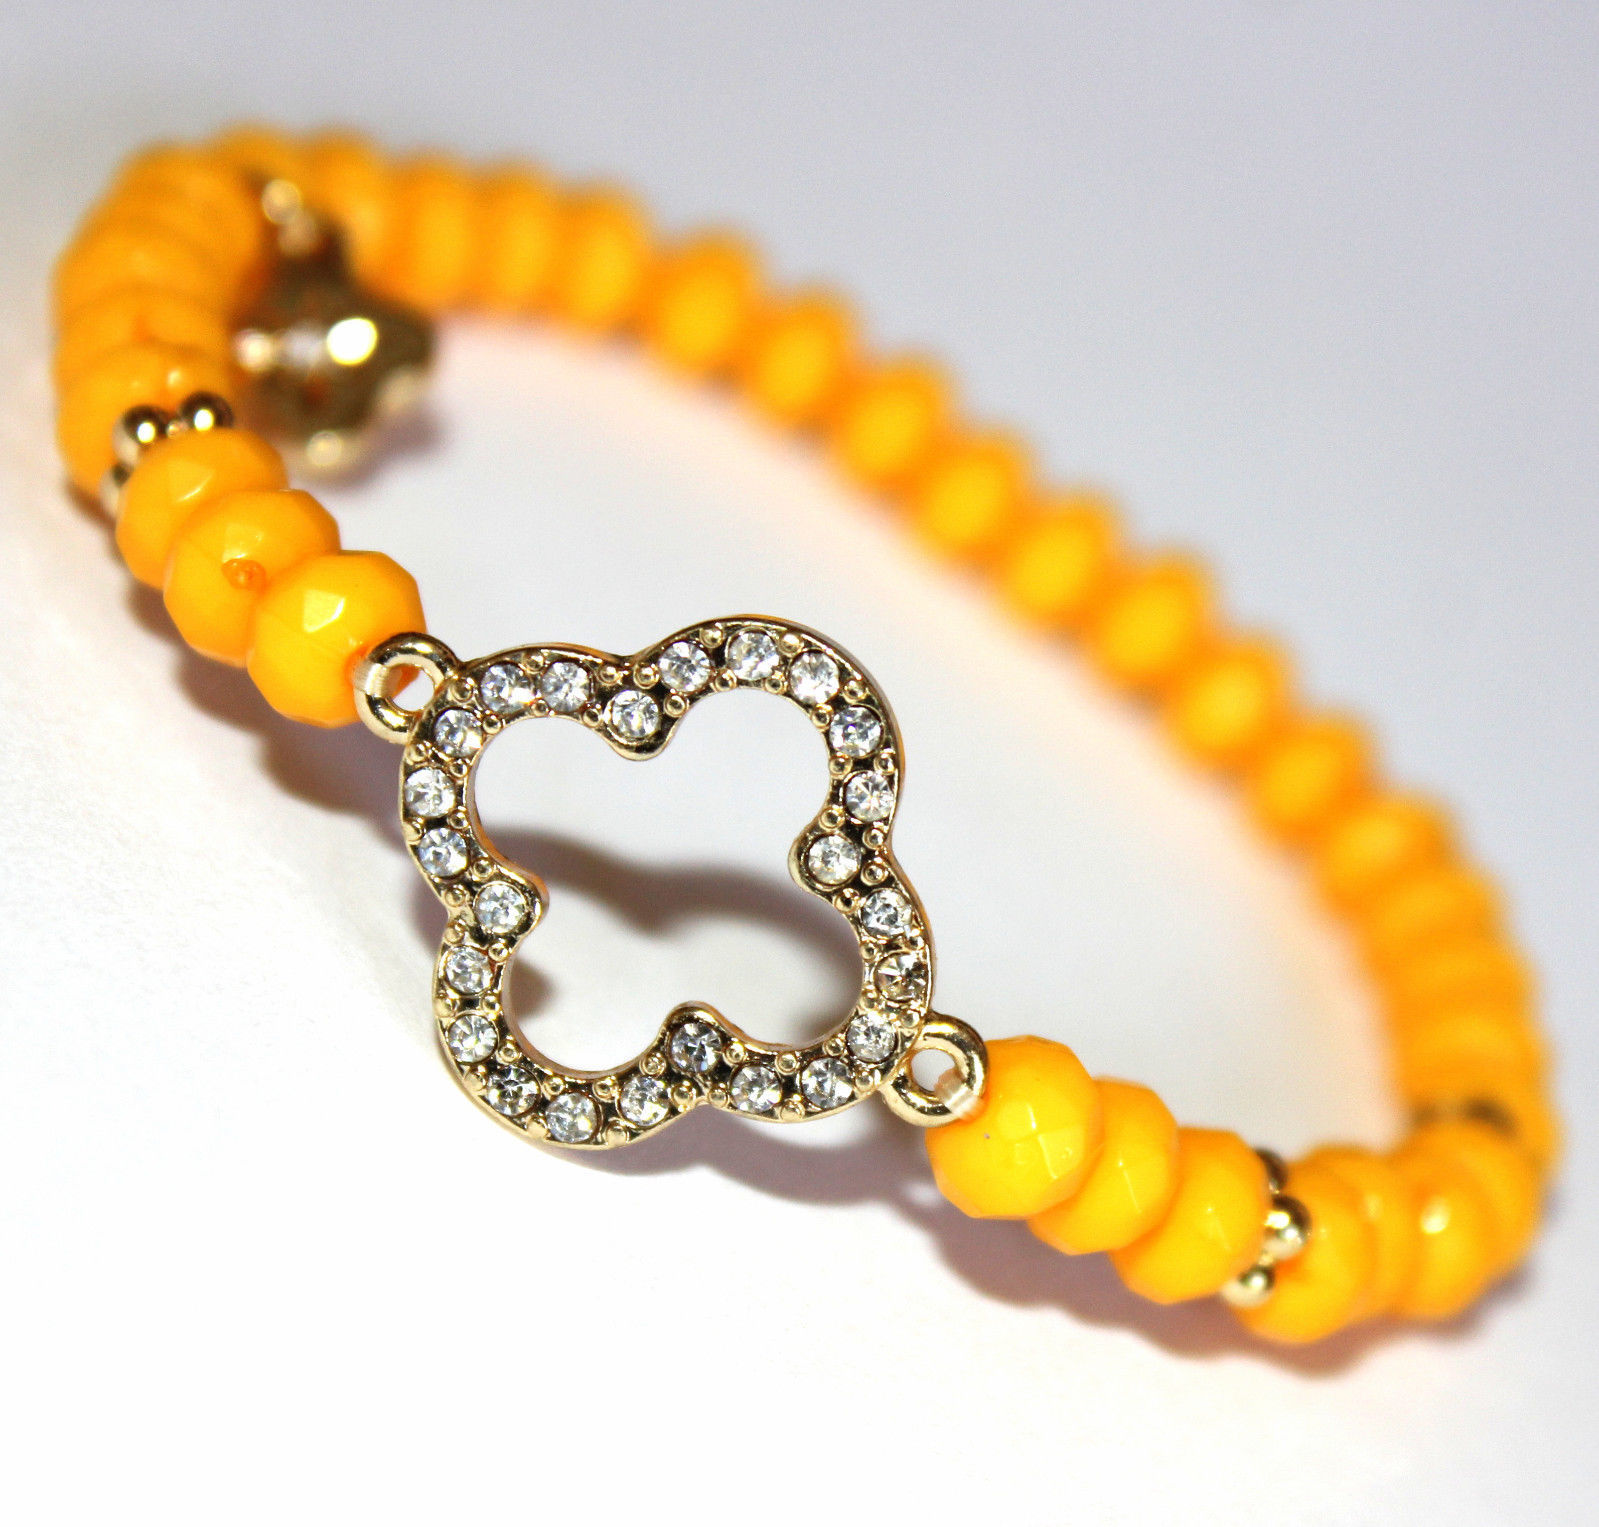 Primary image for Womens Ladies Acrylic Beaded Clover Goldtone Crystal Tangerine Stretch Bracelet